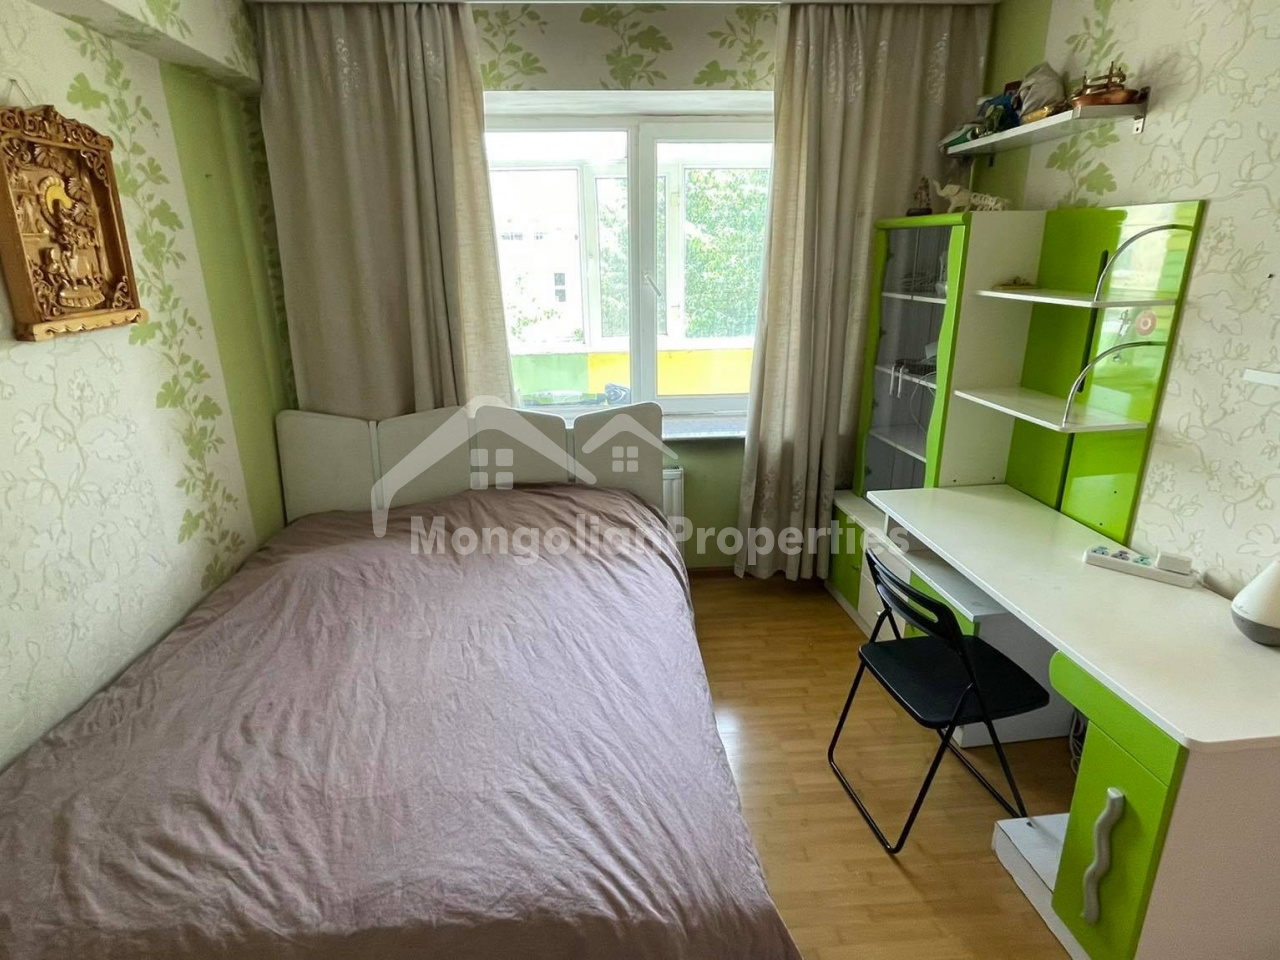 For rent : One bedroom near by Department store